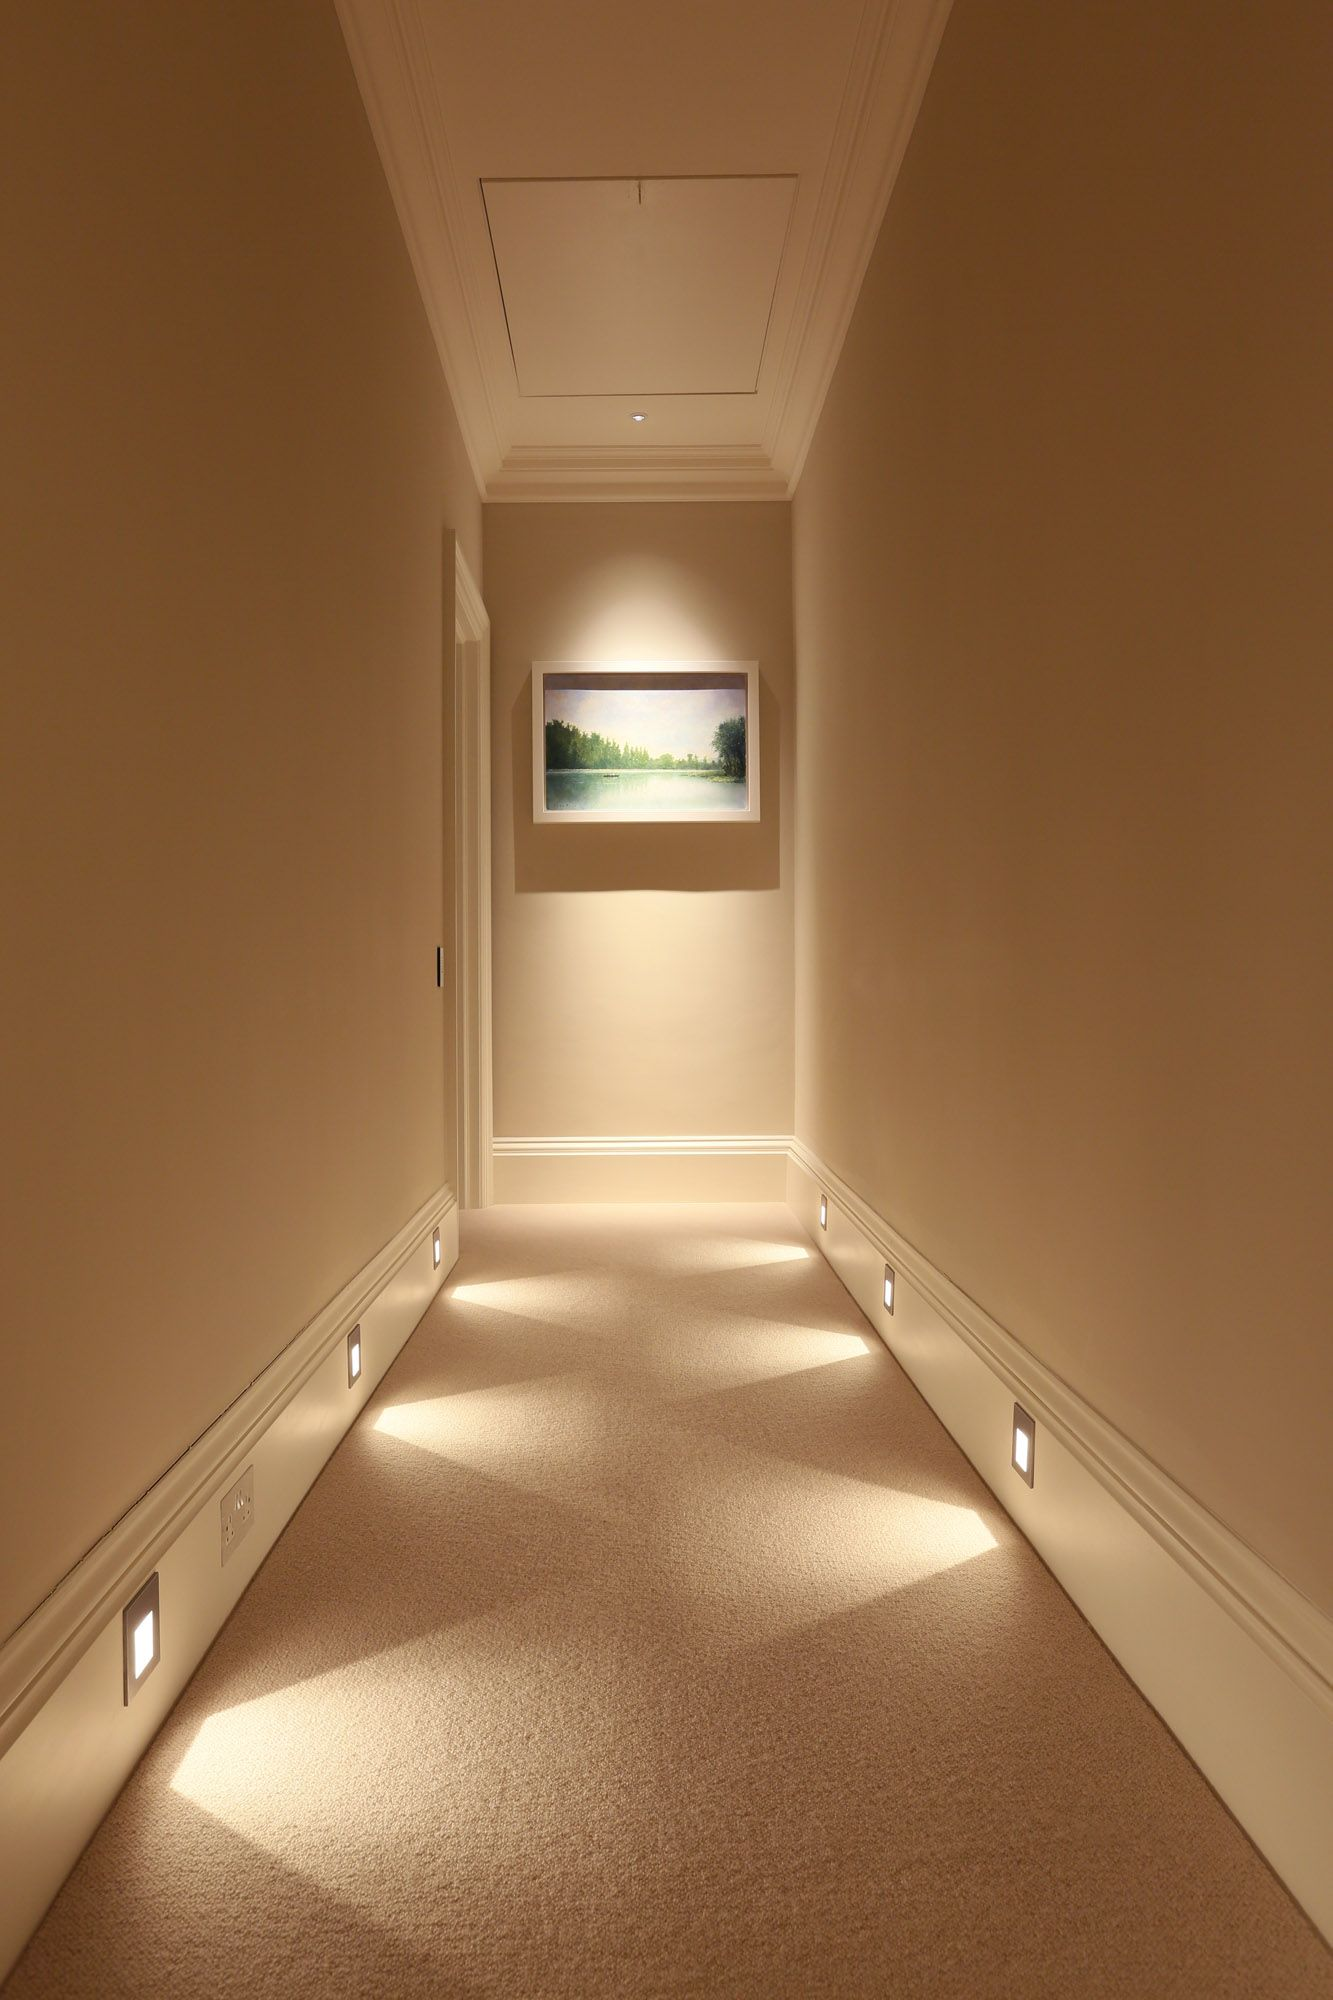 lighting for halls. Most Popular Light For Stairways, Check It Out :) #homeideas #stairways Lighting Halls